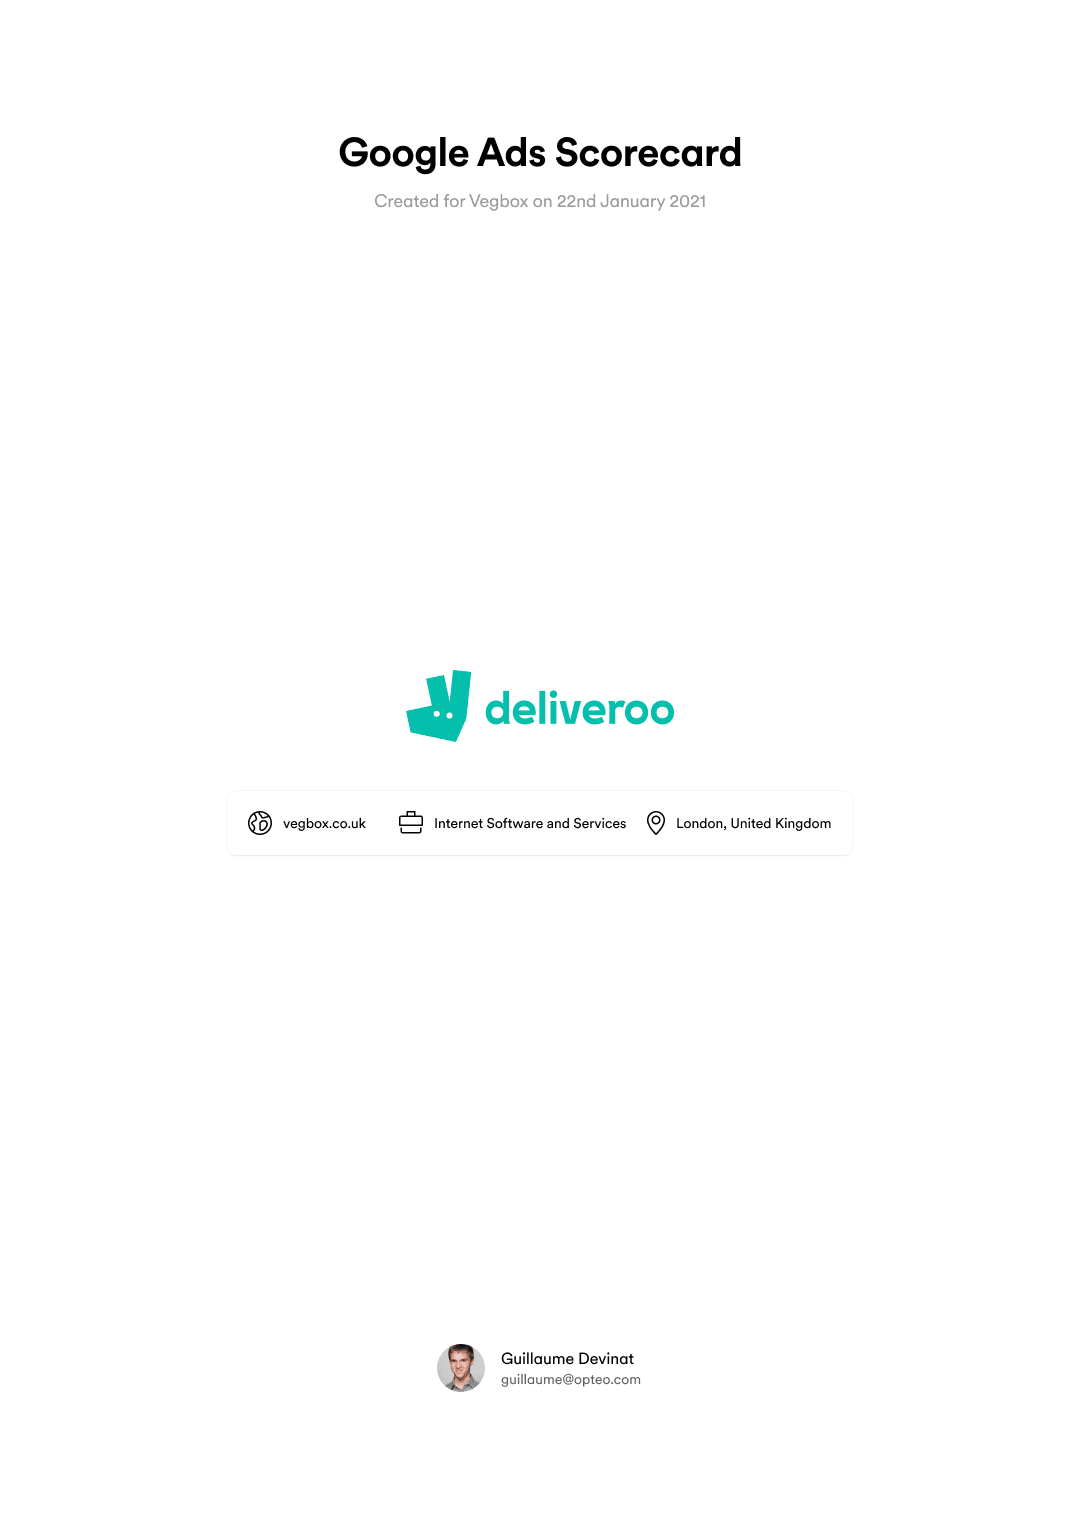 Exported Deliveroo scorecard cover.